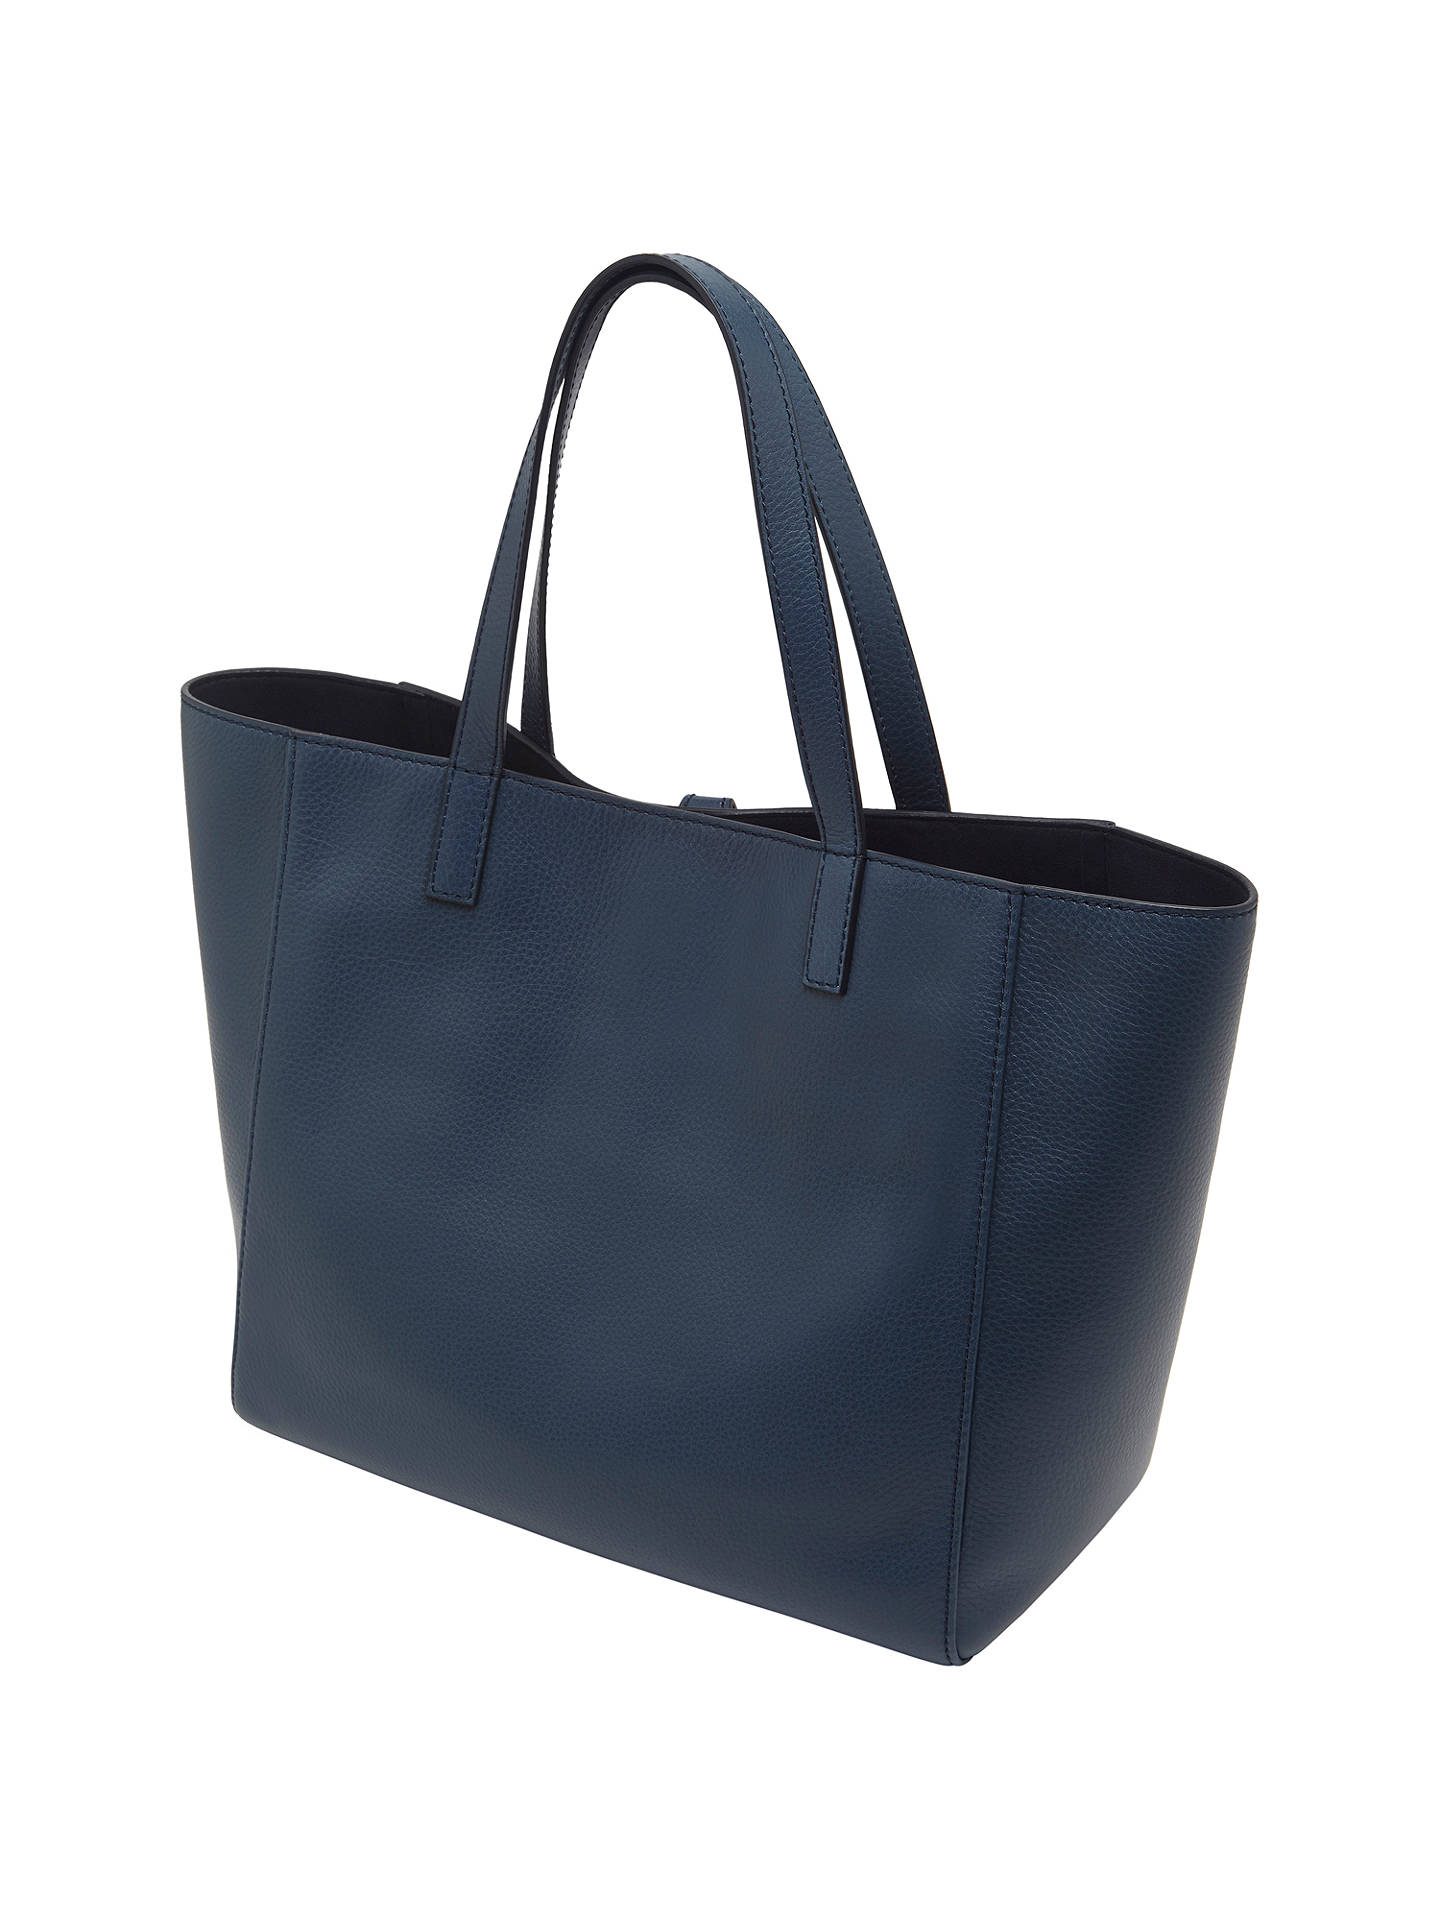 b8fe2de84303 ... BuyMulberry Tessie Leather Tote Bag